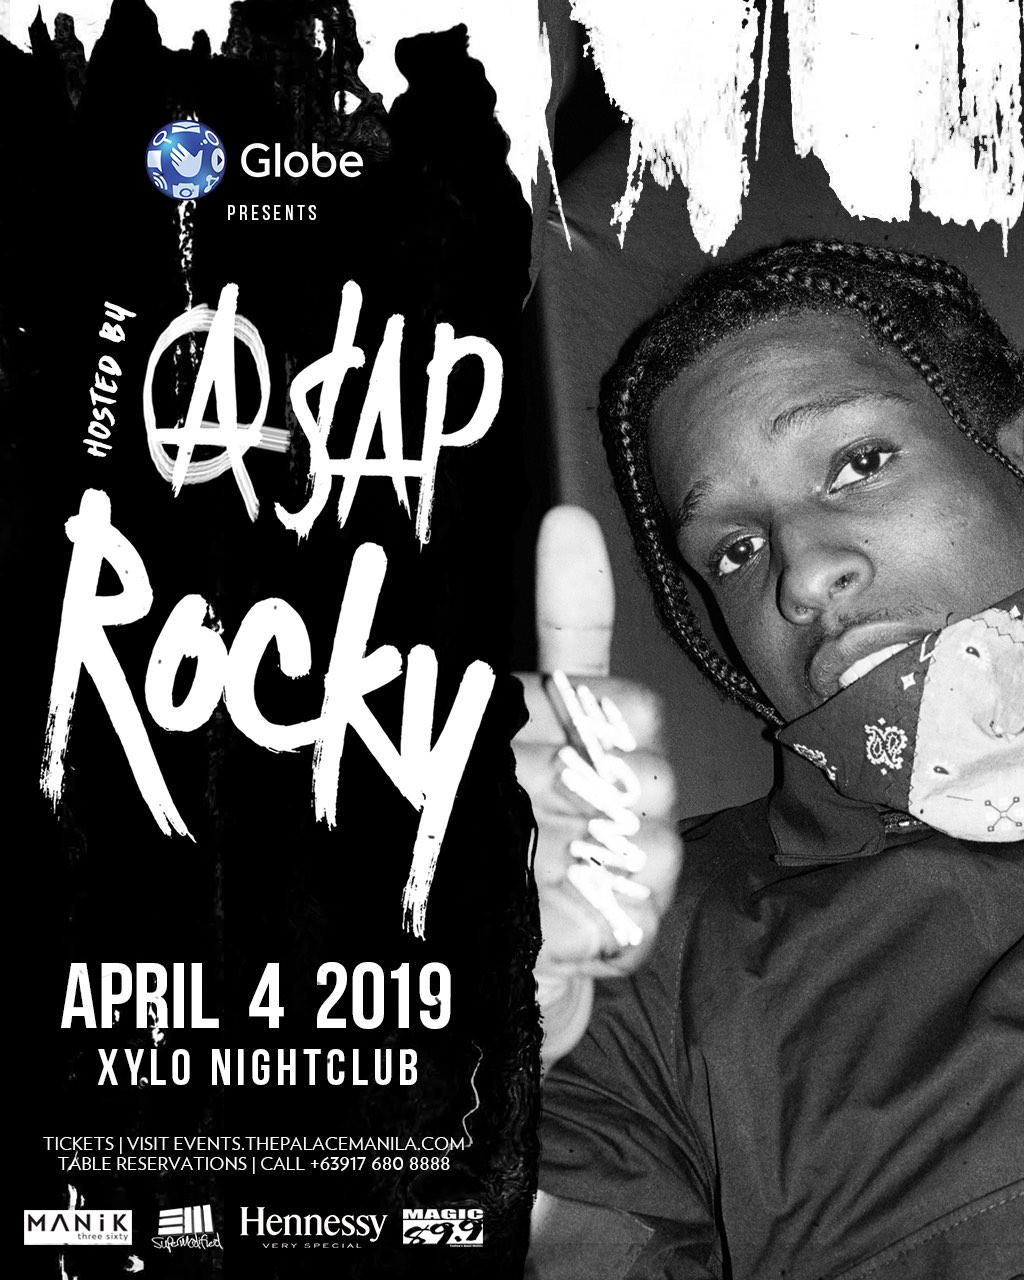 A$AP ROCKY at XYLO Nightclub